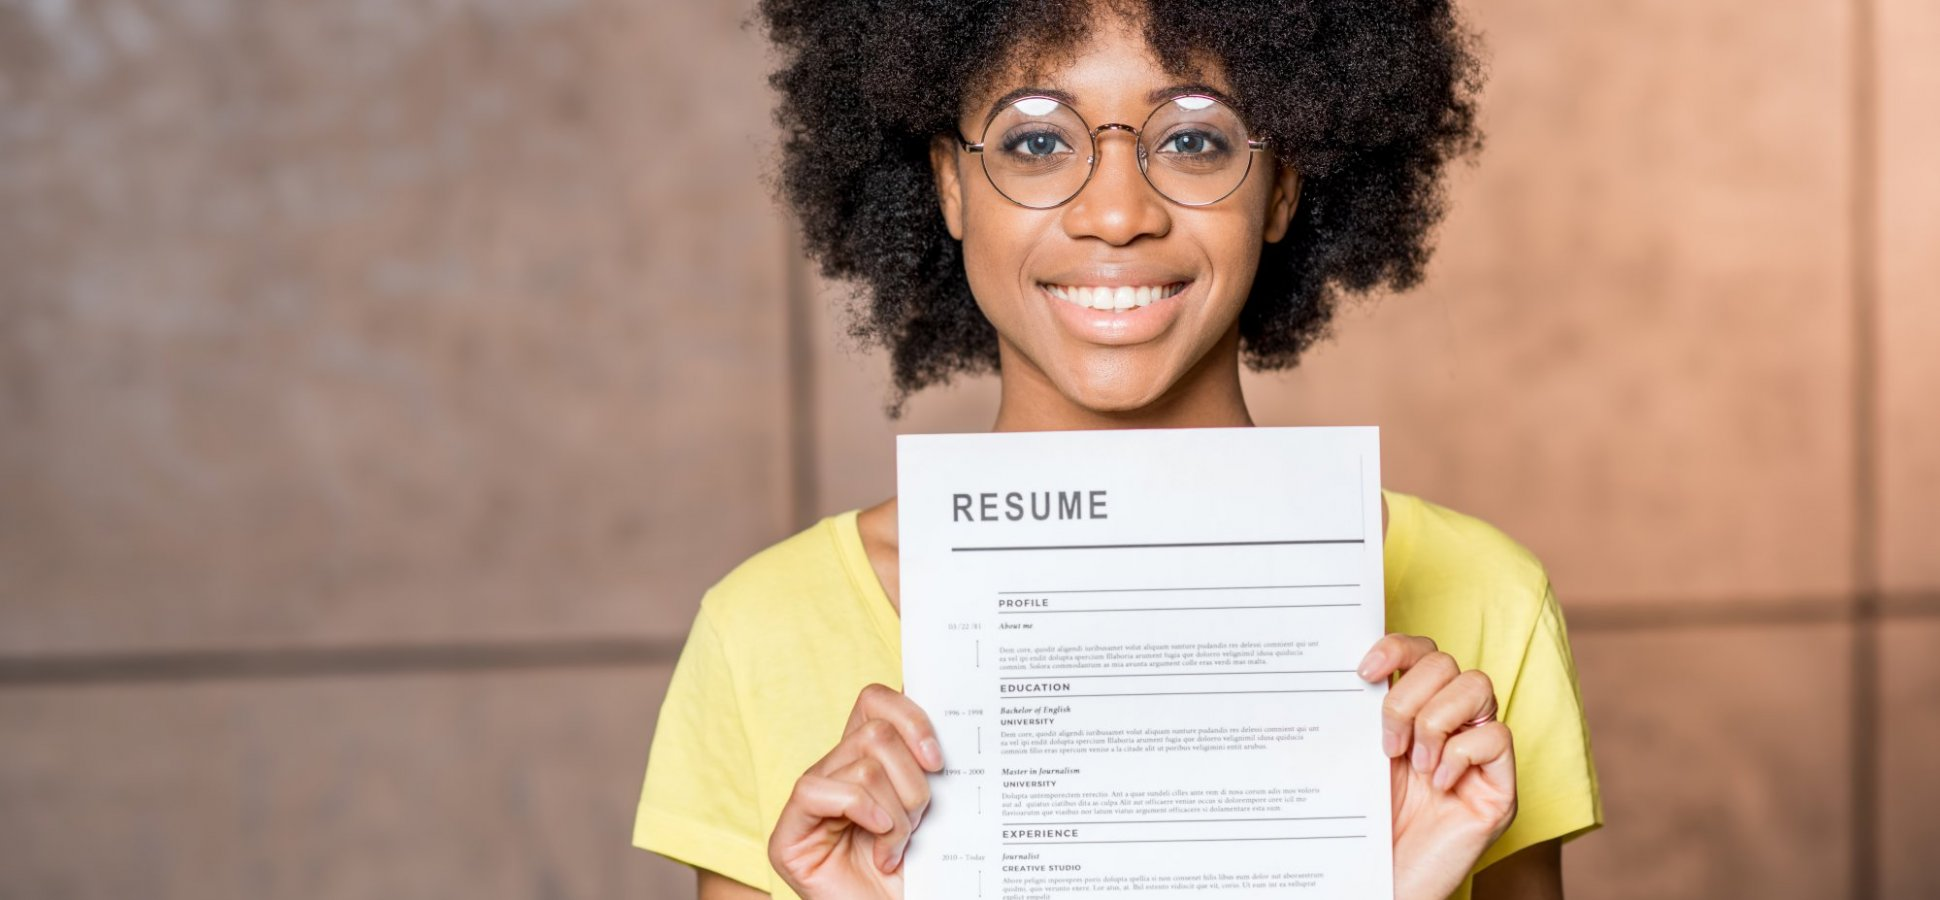 Want to Hire the Best? Look for These 3 Key Words on Every Single Resume